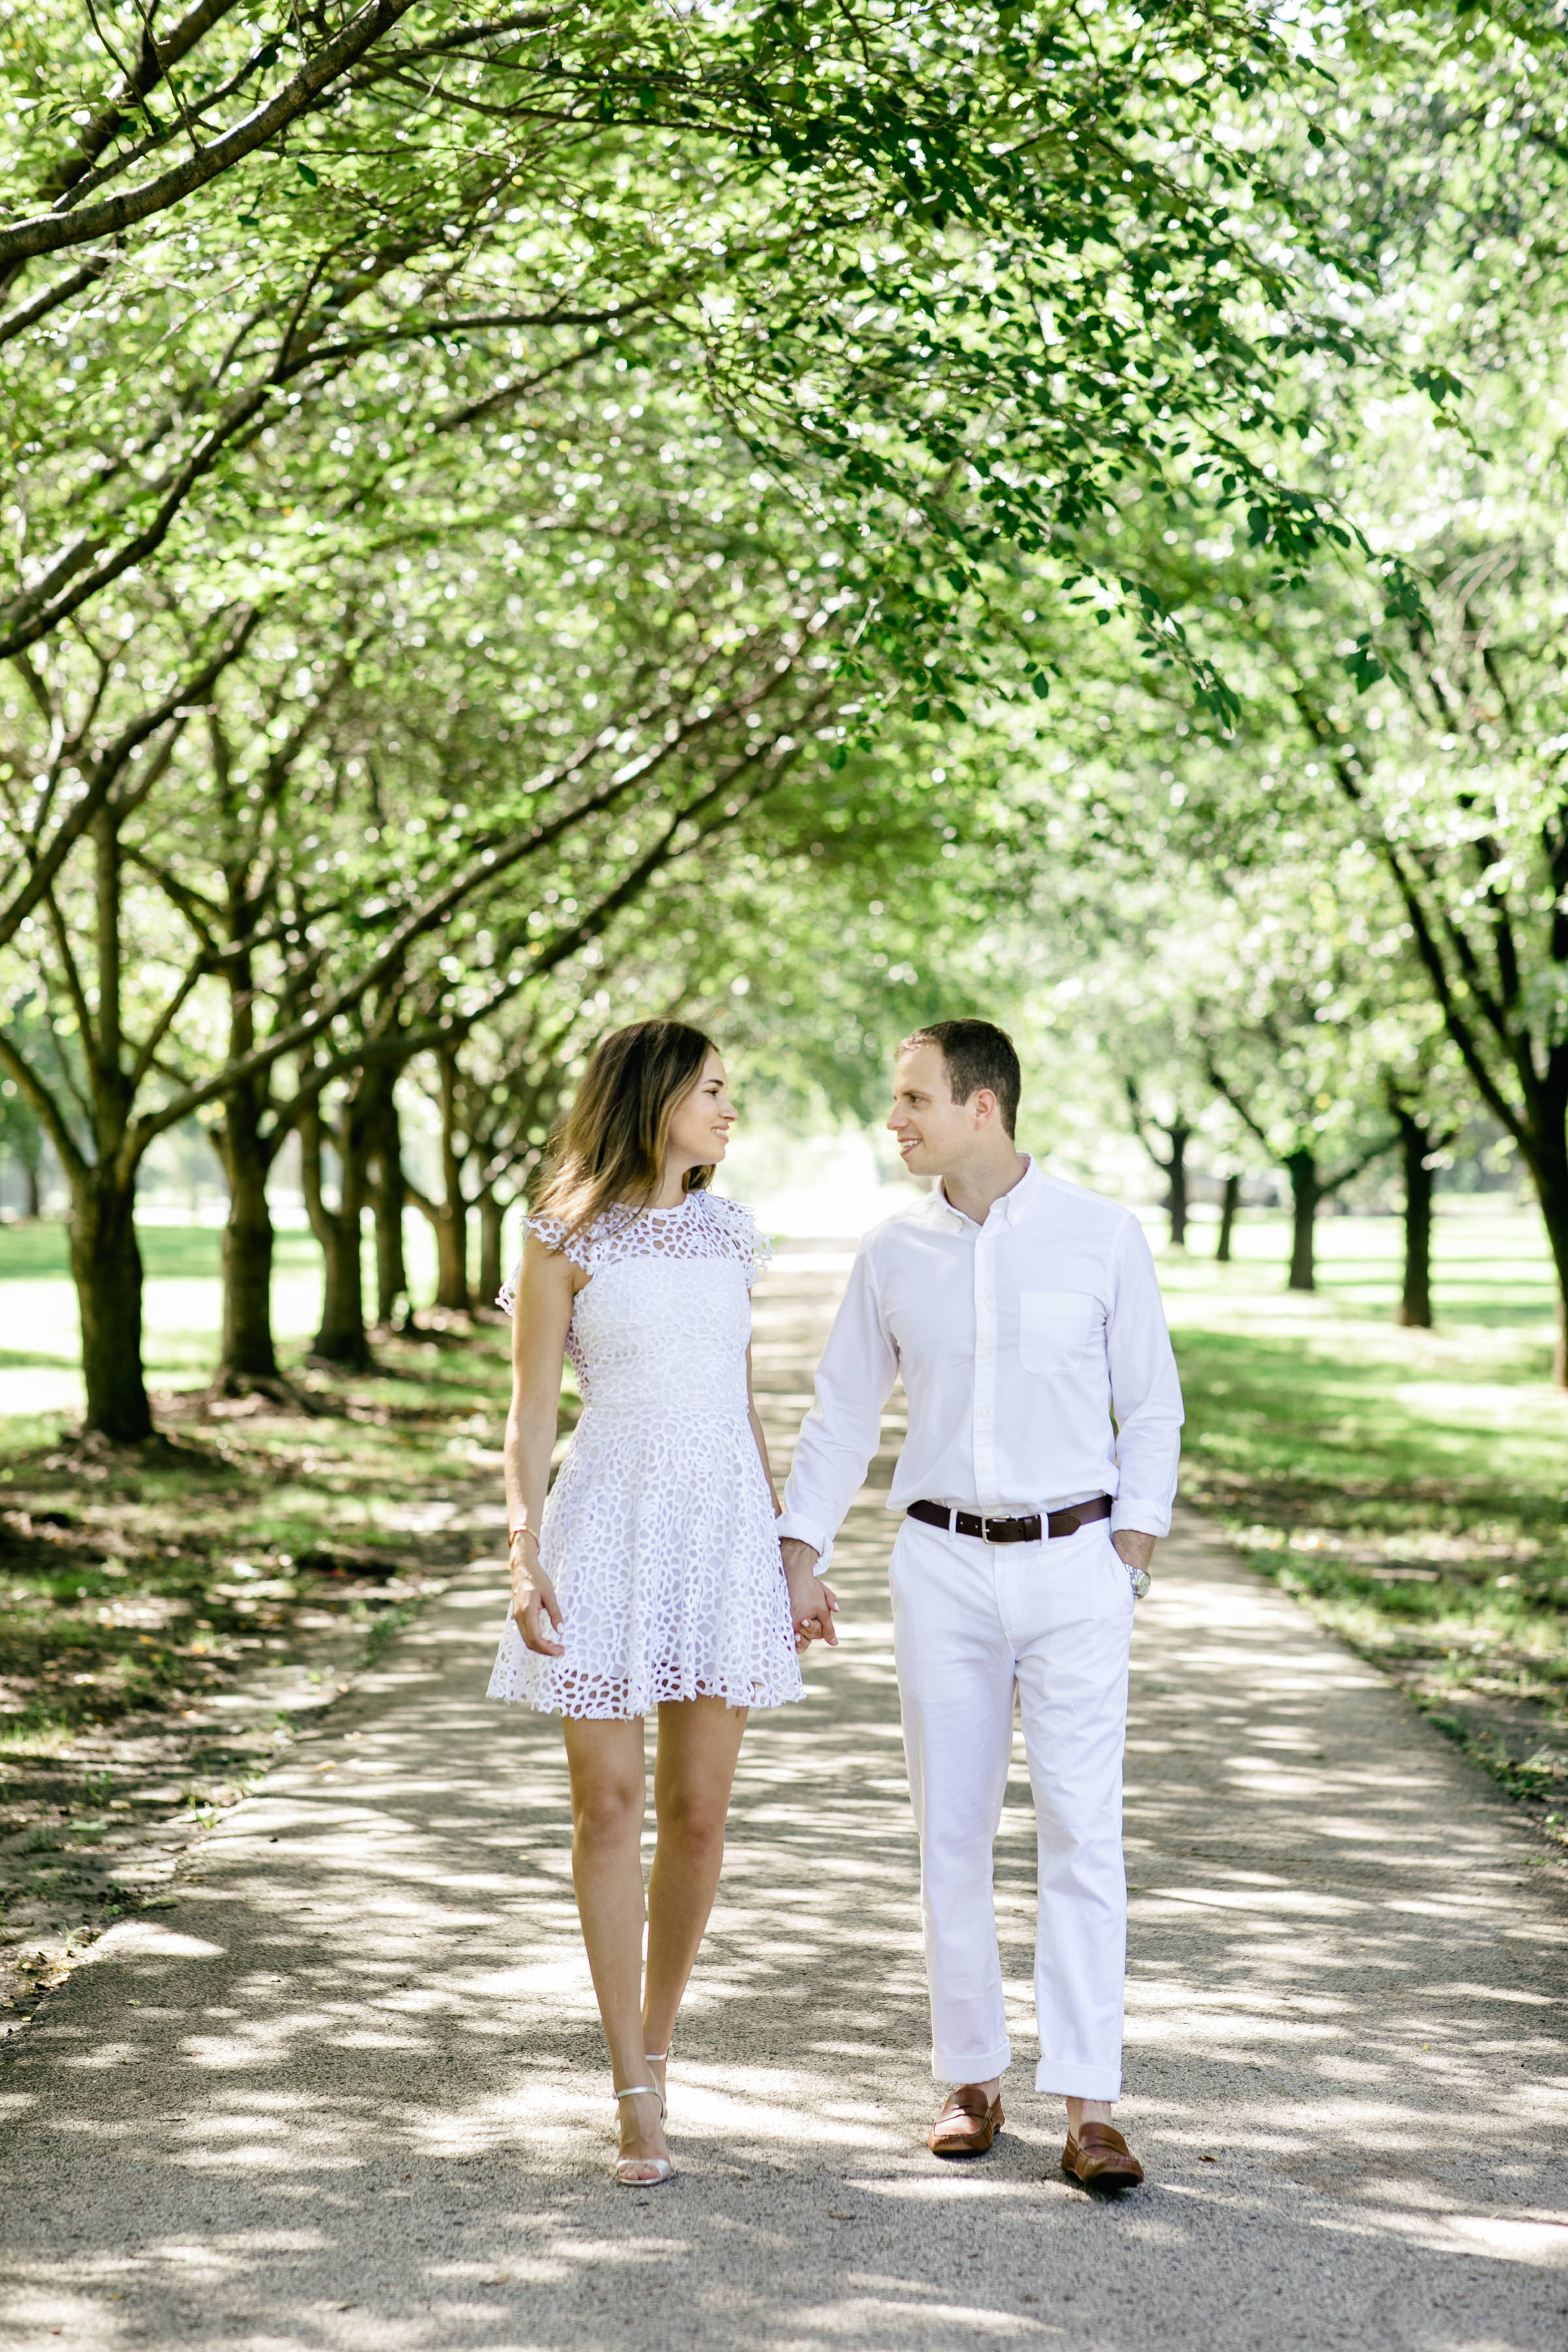 photography-family-natural-candid-engaged-fairmount-philadelphia-wedding-horticultural center-modern-lifestyle-28.JPG